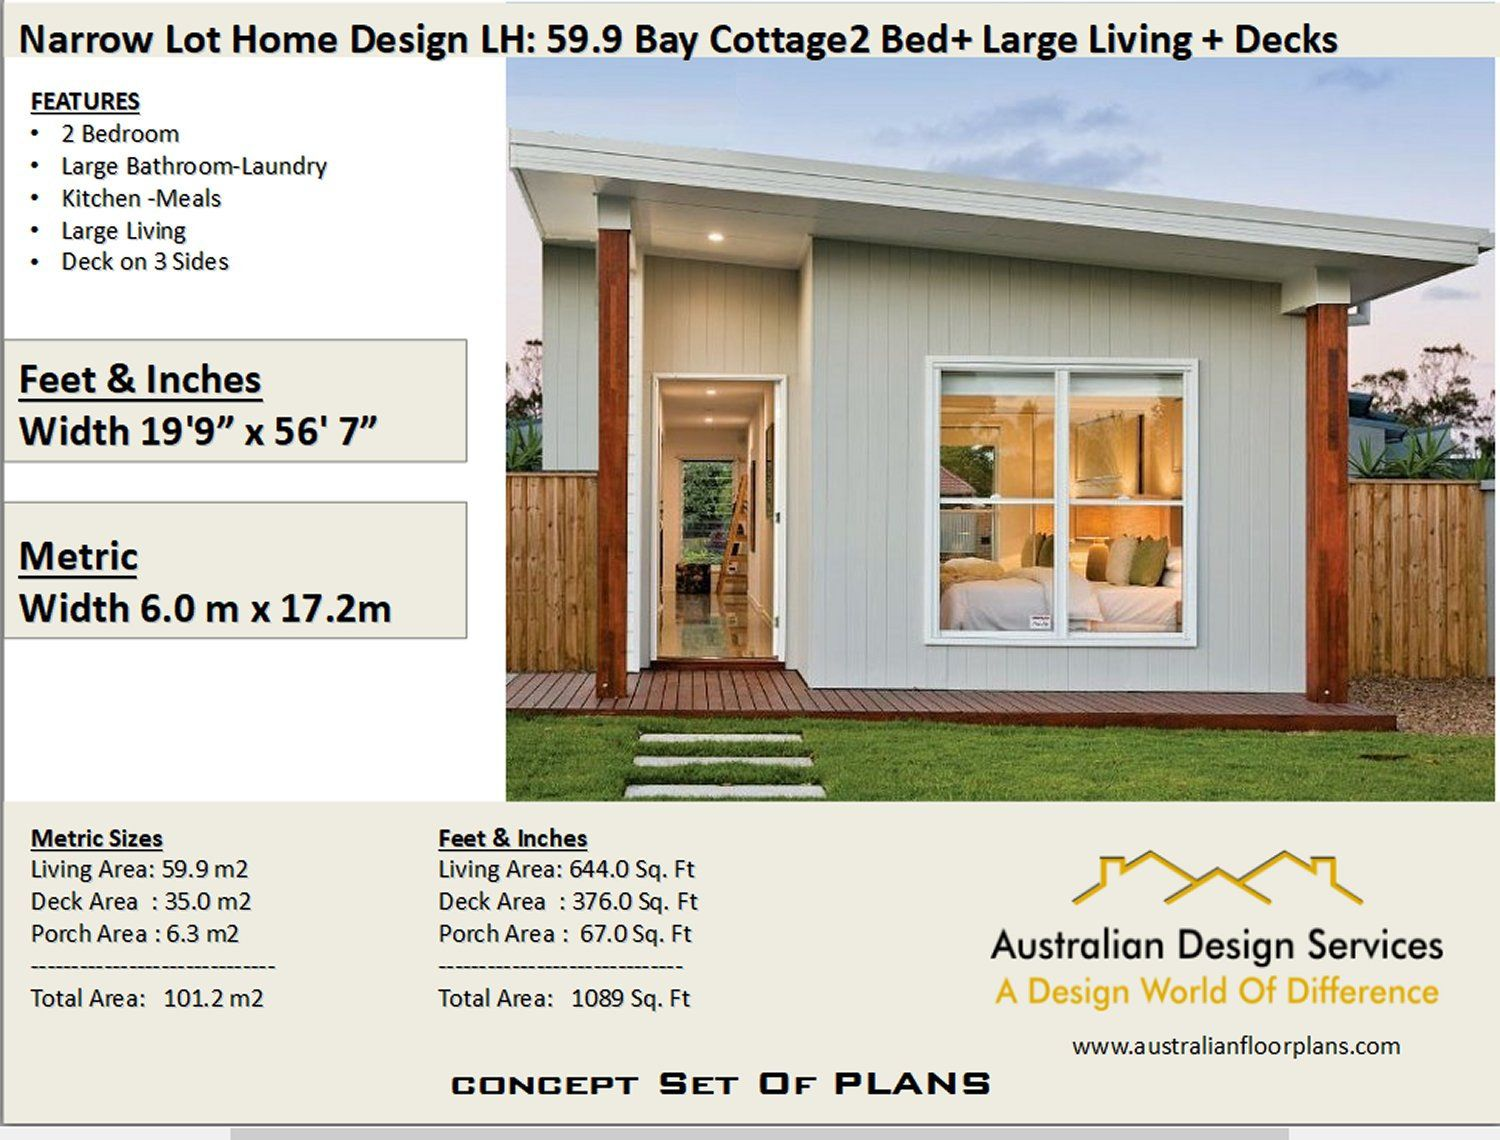 59 9 Bay Cottage 645 Sq Feet Or 59 9 M2 2 Bedroom 2 Bed Etsy House Plans For Sale Cottage House Plans House Plans